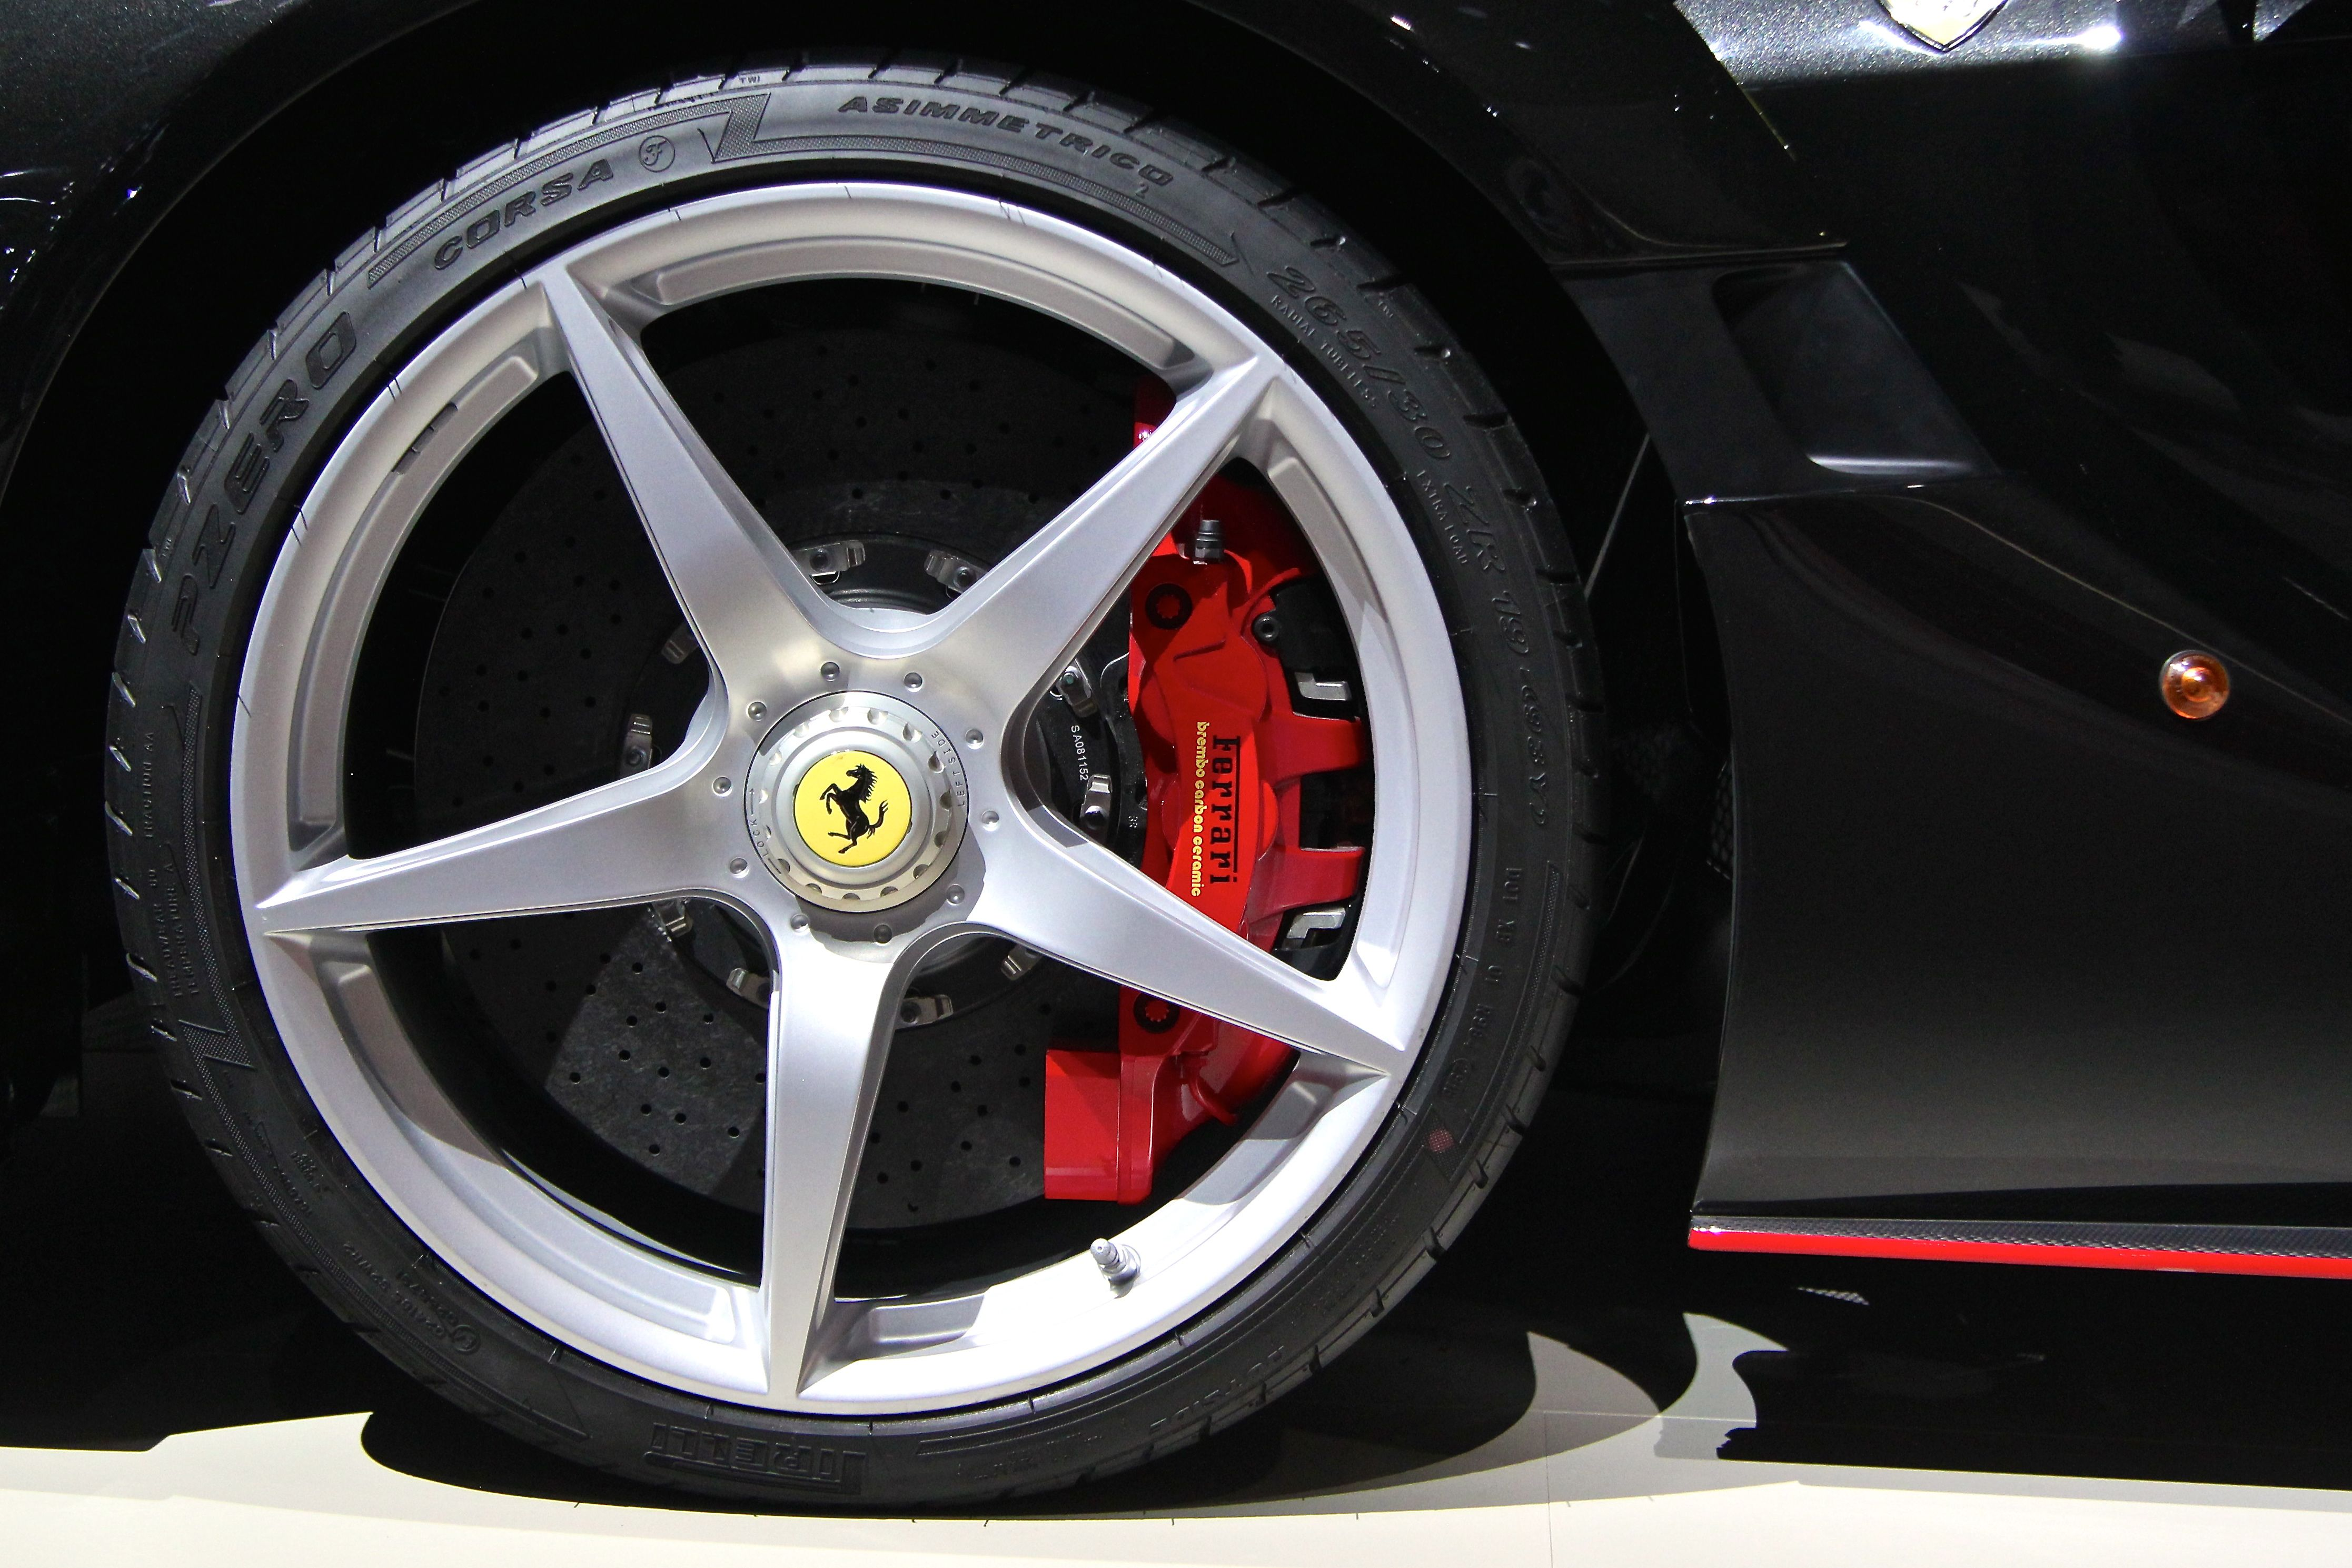 LaFerrari Aperta - 2016 - wheel / jante - 2016 - Mondial Auto - photo Ludo Ferrari